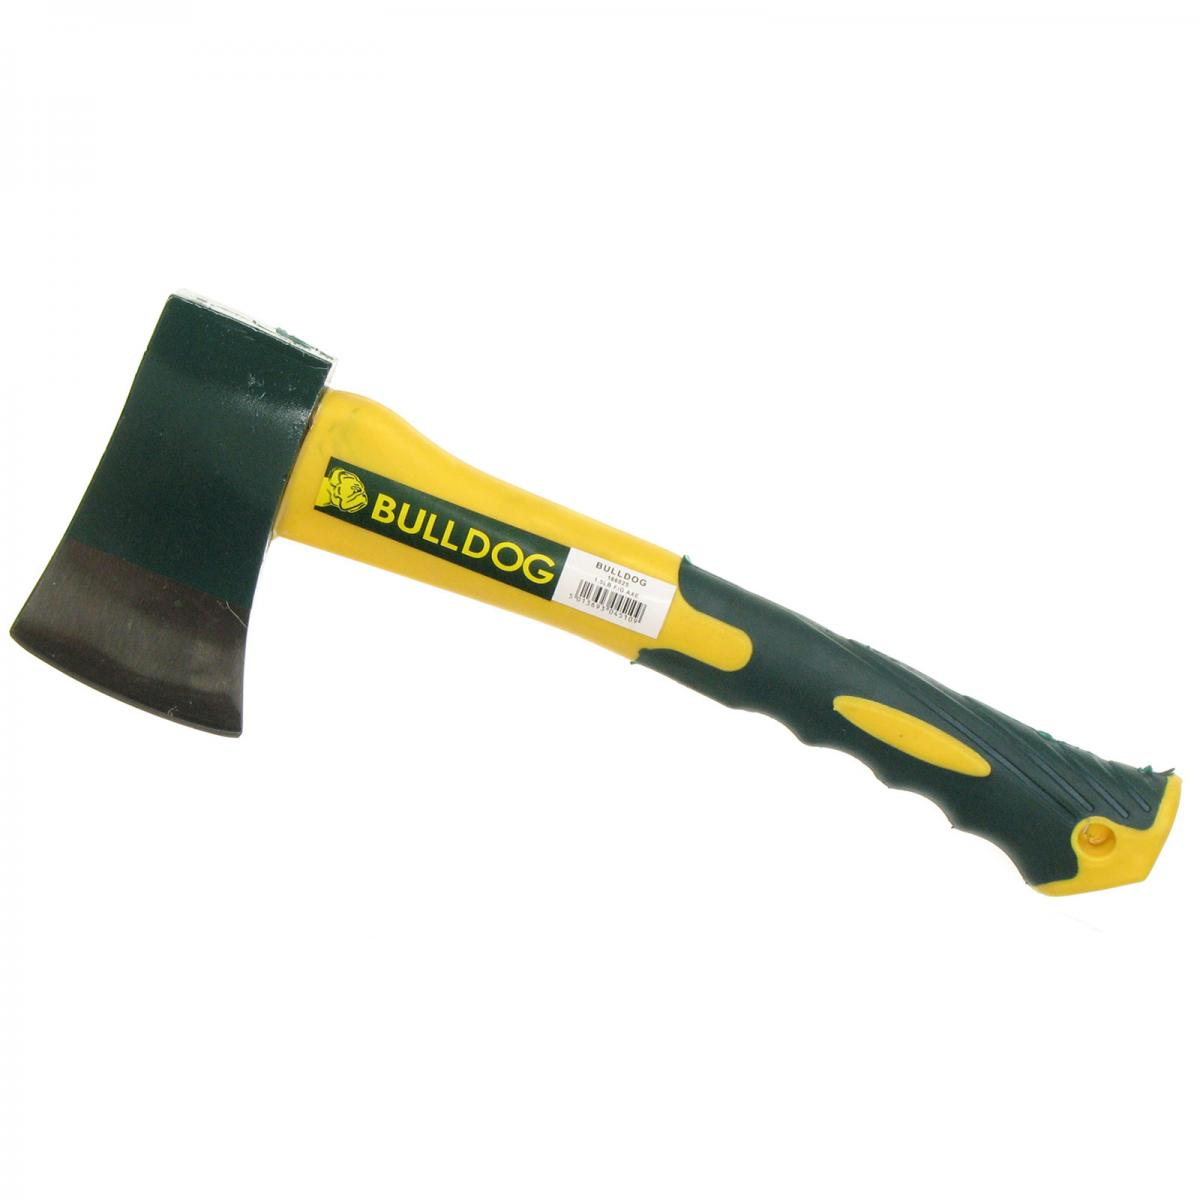 Bulldog 1.5LB Hatchet – Now Only £7.00